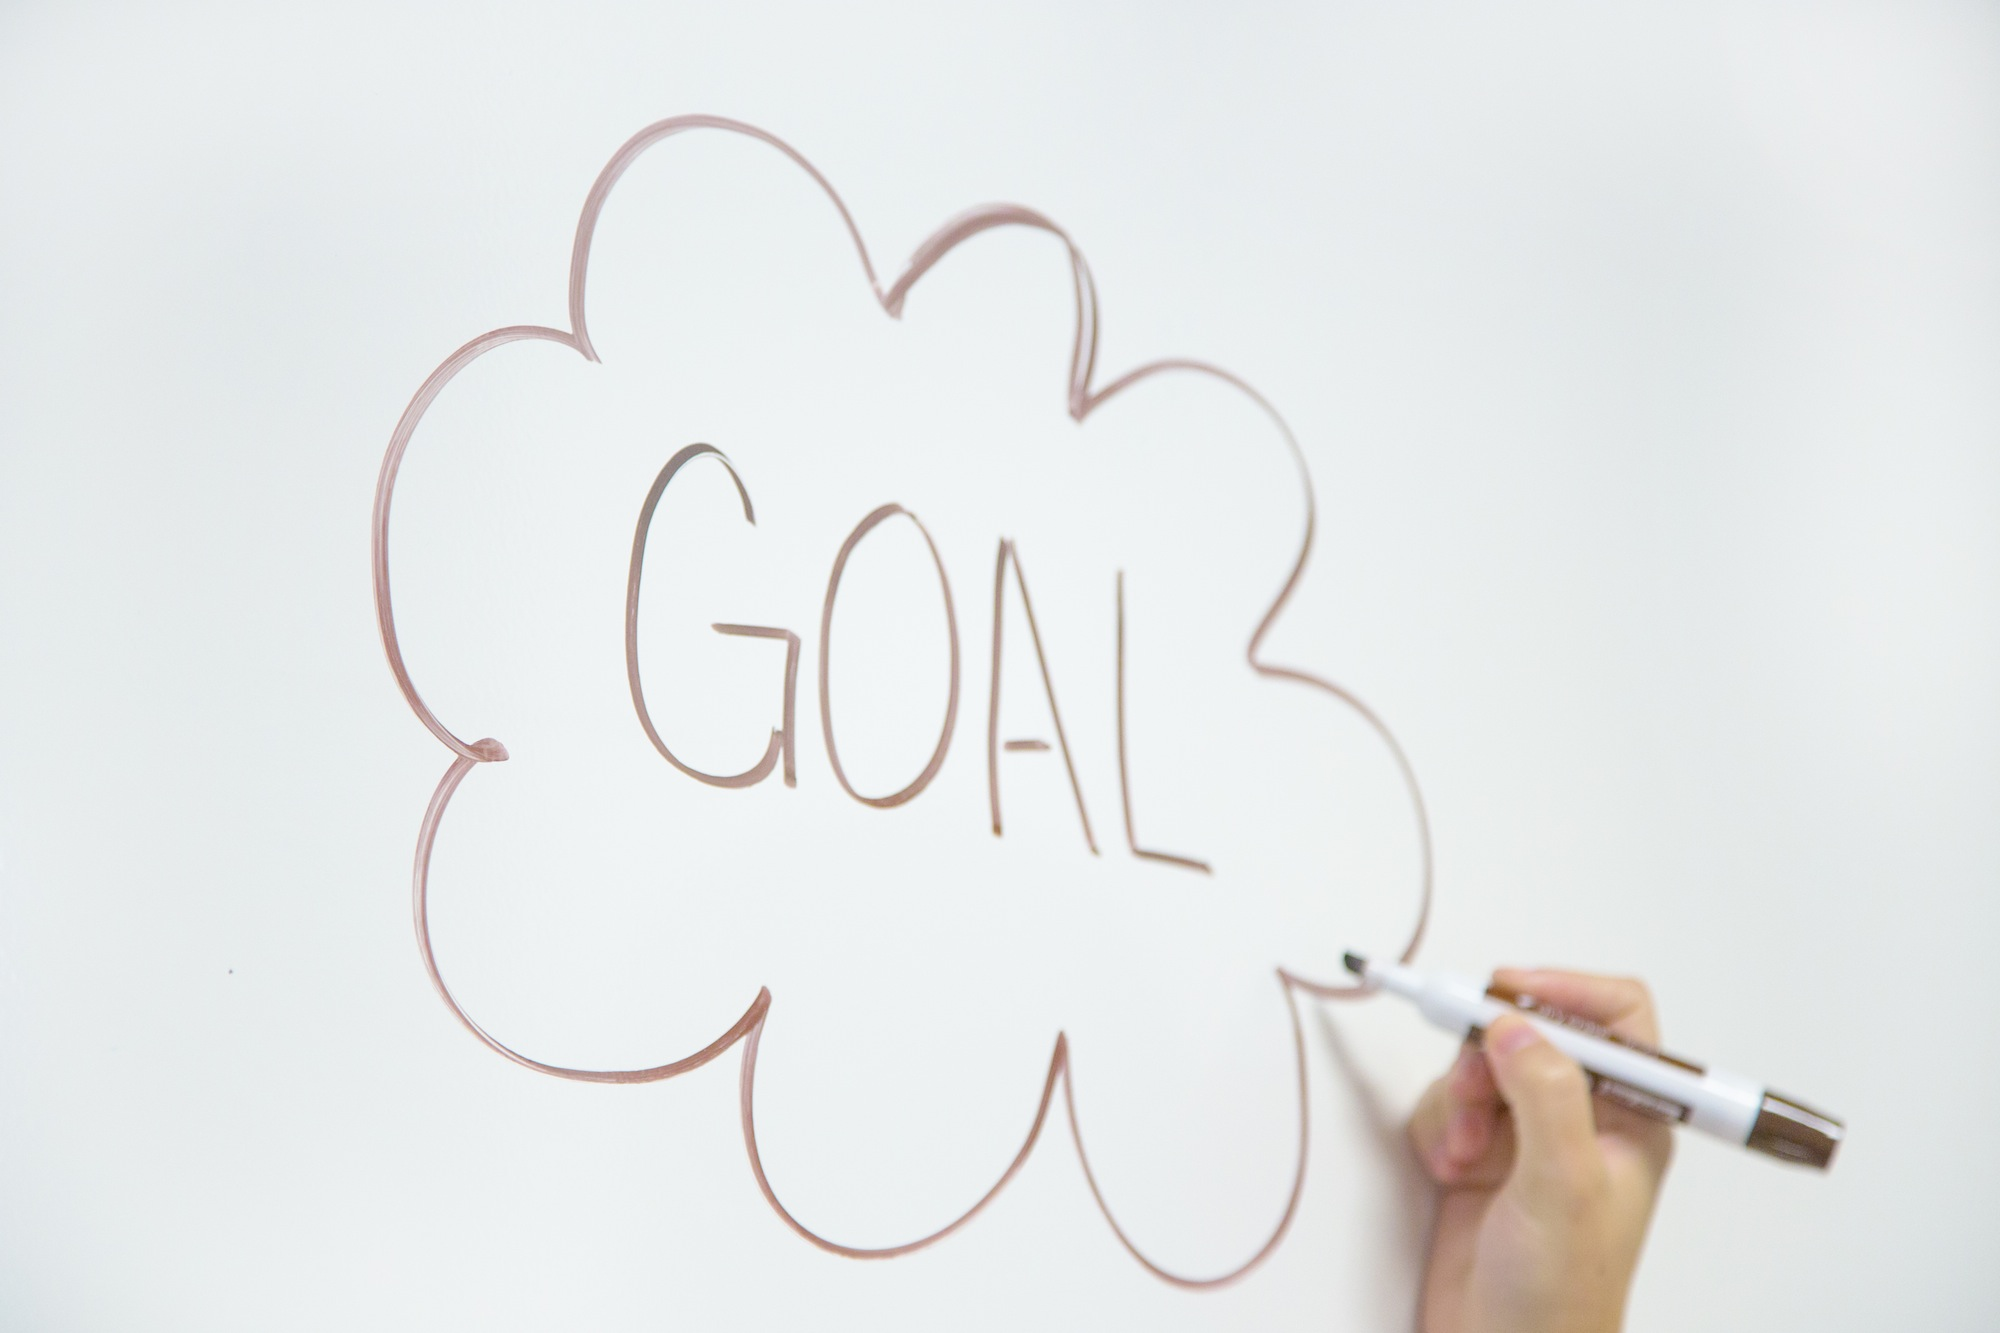 set goals PR, how to set goals in public relations, goals in a PR campaign, goals and gardening public relations, gardening marketing tips, garden media group